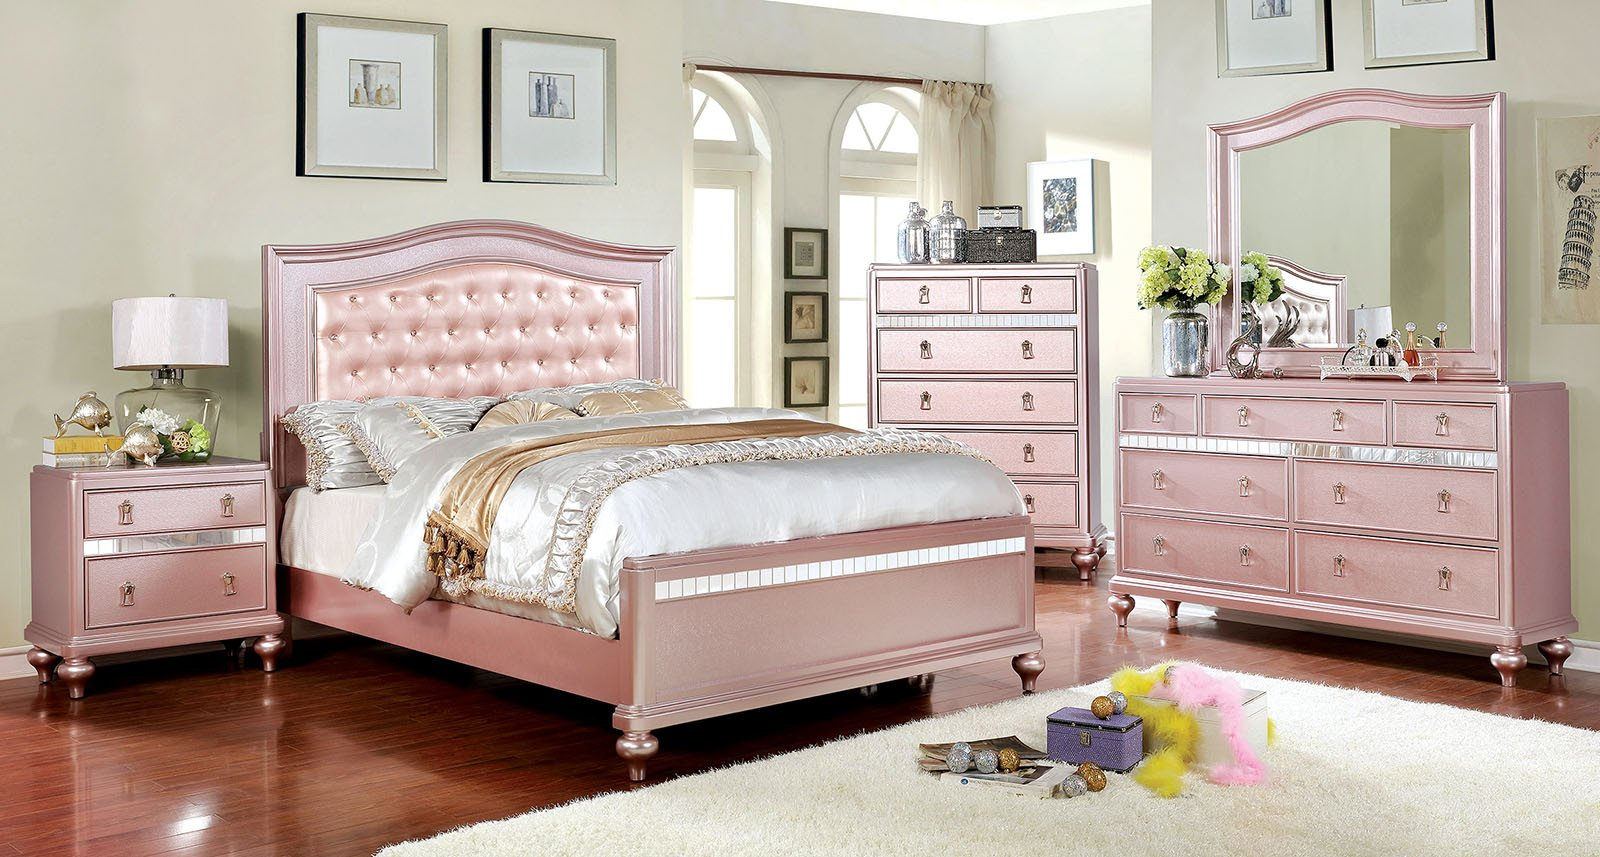 California King Bedroom Set Clearance Lovely Ariston Rose Gold Finish Cal King Size Bed with Mirrored Trim Jeweled button Tufted Padded Leather Headboard